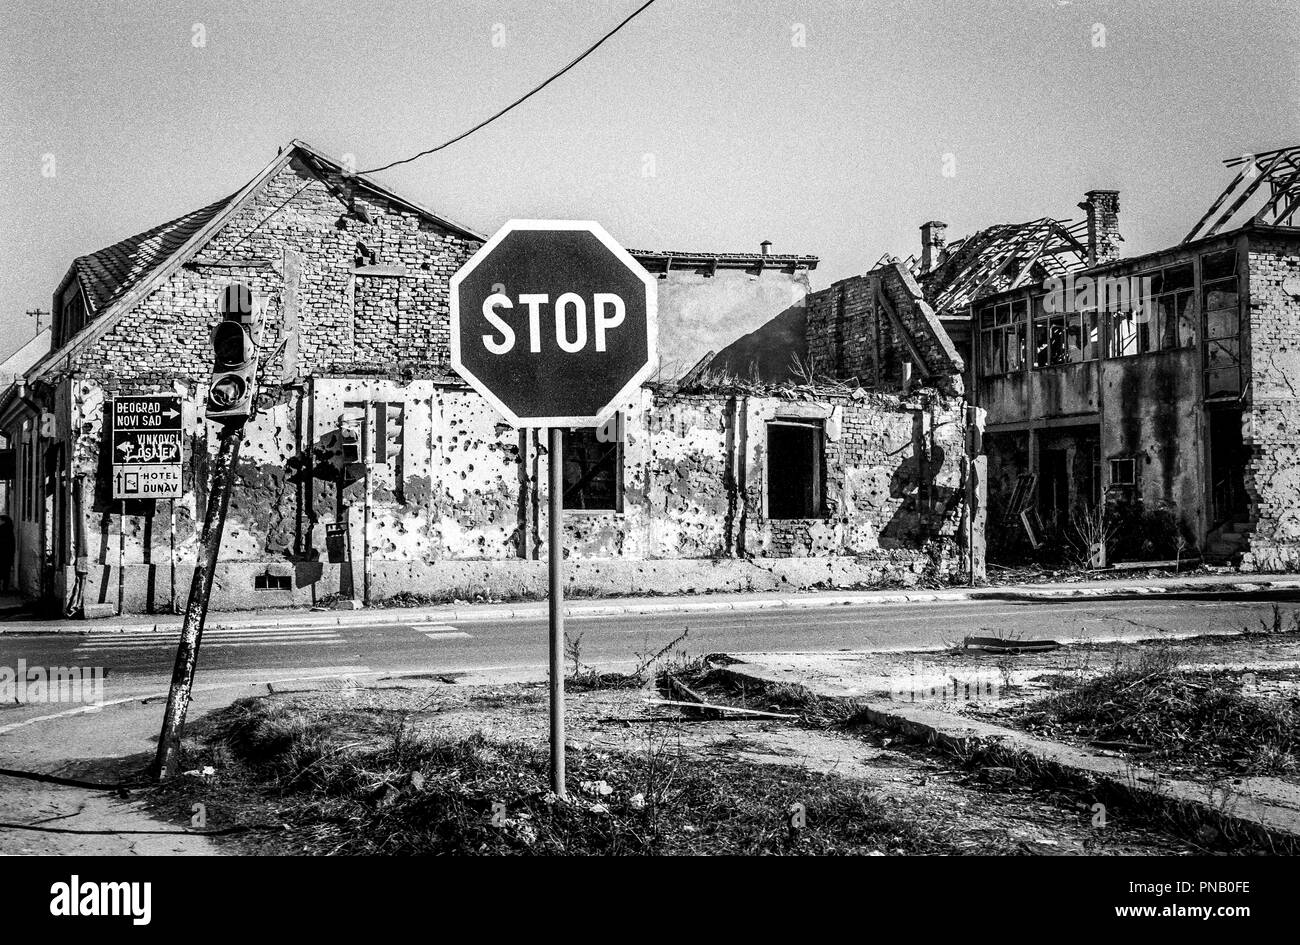 The Balkan conflict left its mark on the town of Vukovar. Vukovar's nickname 'Croatian Stalingrad' stems from being devastated by Serb-dominated army forces in the early days of Croatia's war for independence from the ex-Yugoslavia. It suffered a three-month long siege before being captured by Serb forces in November 1991. Stock Photo